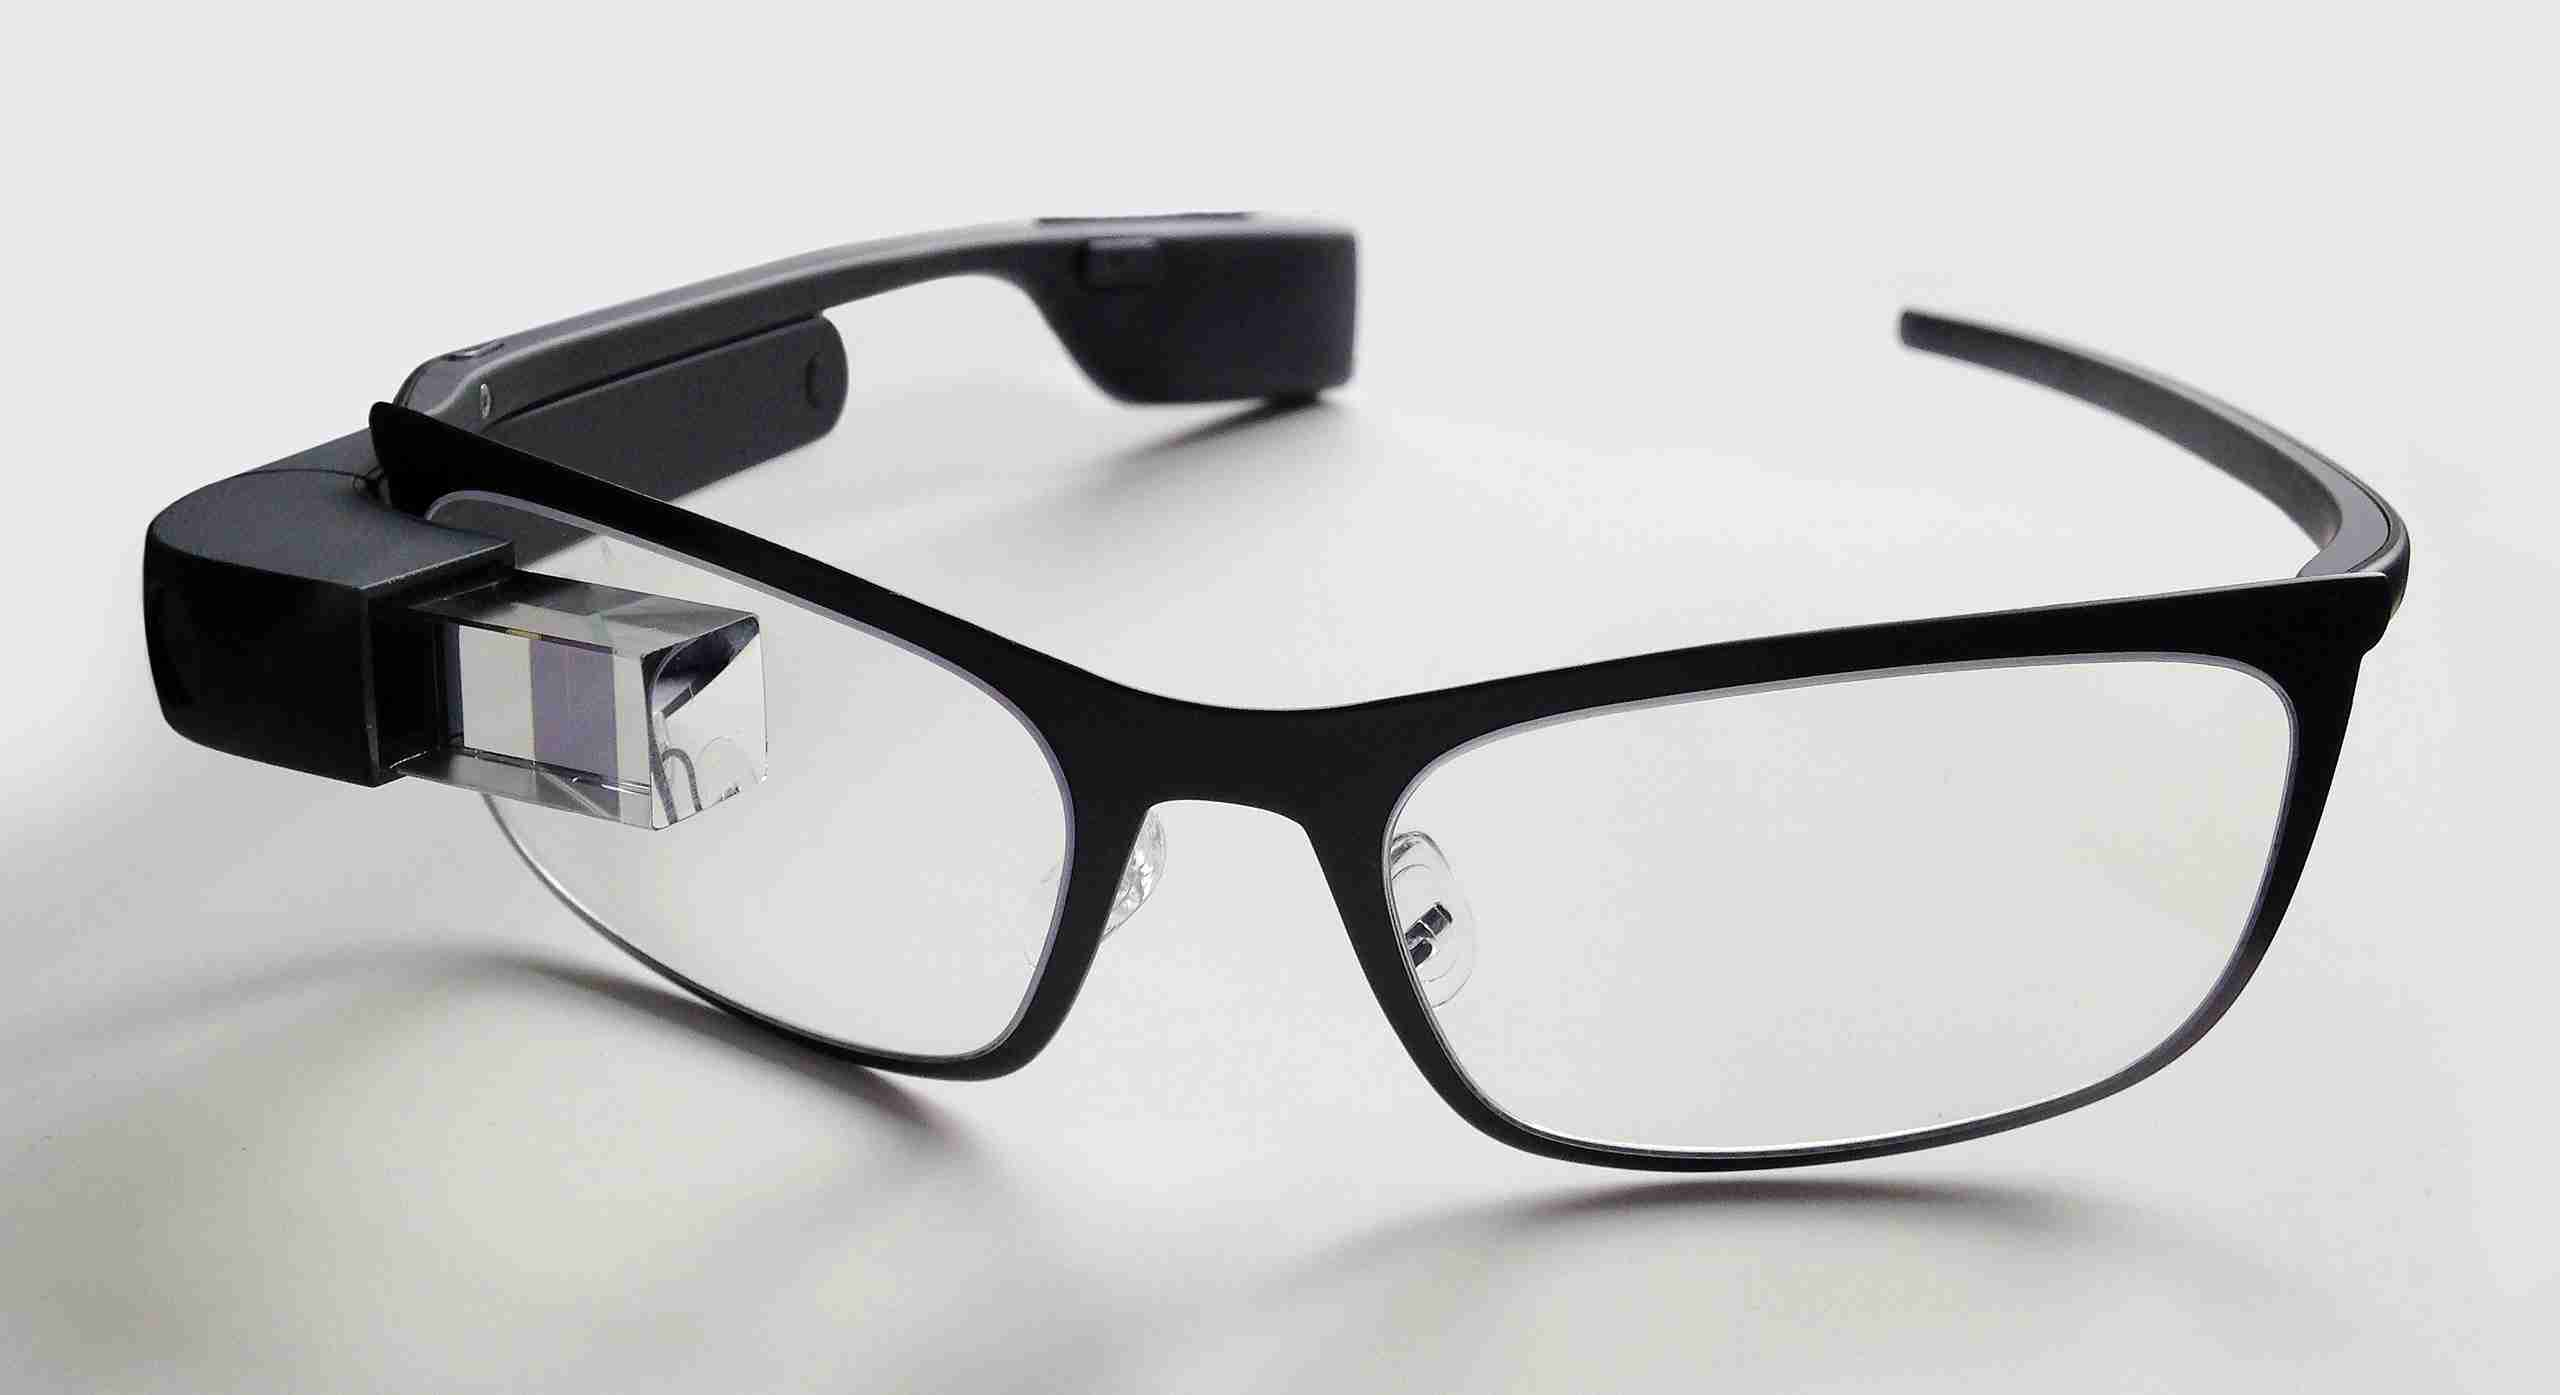 2560px-Google_Glass_with_frame